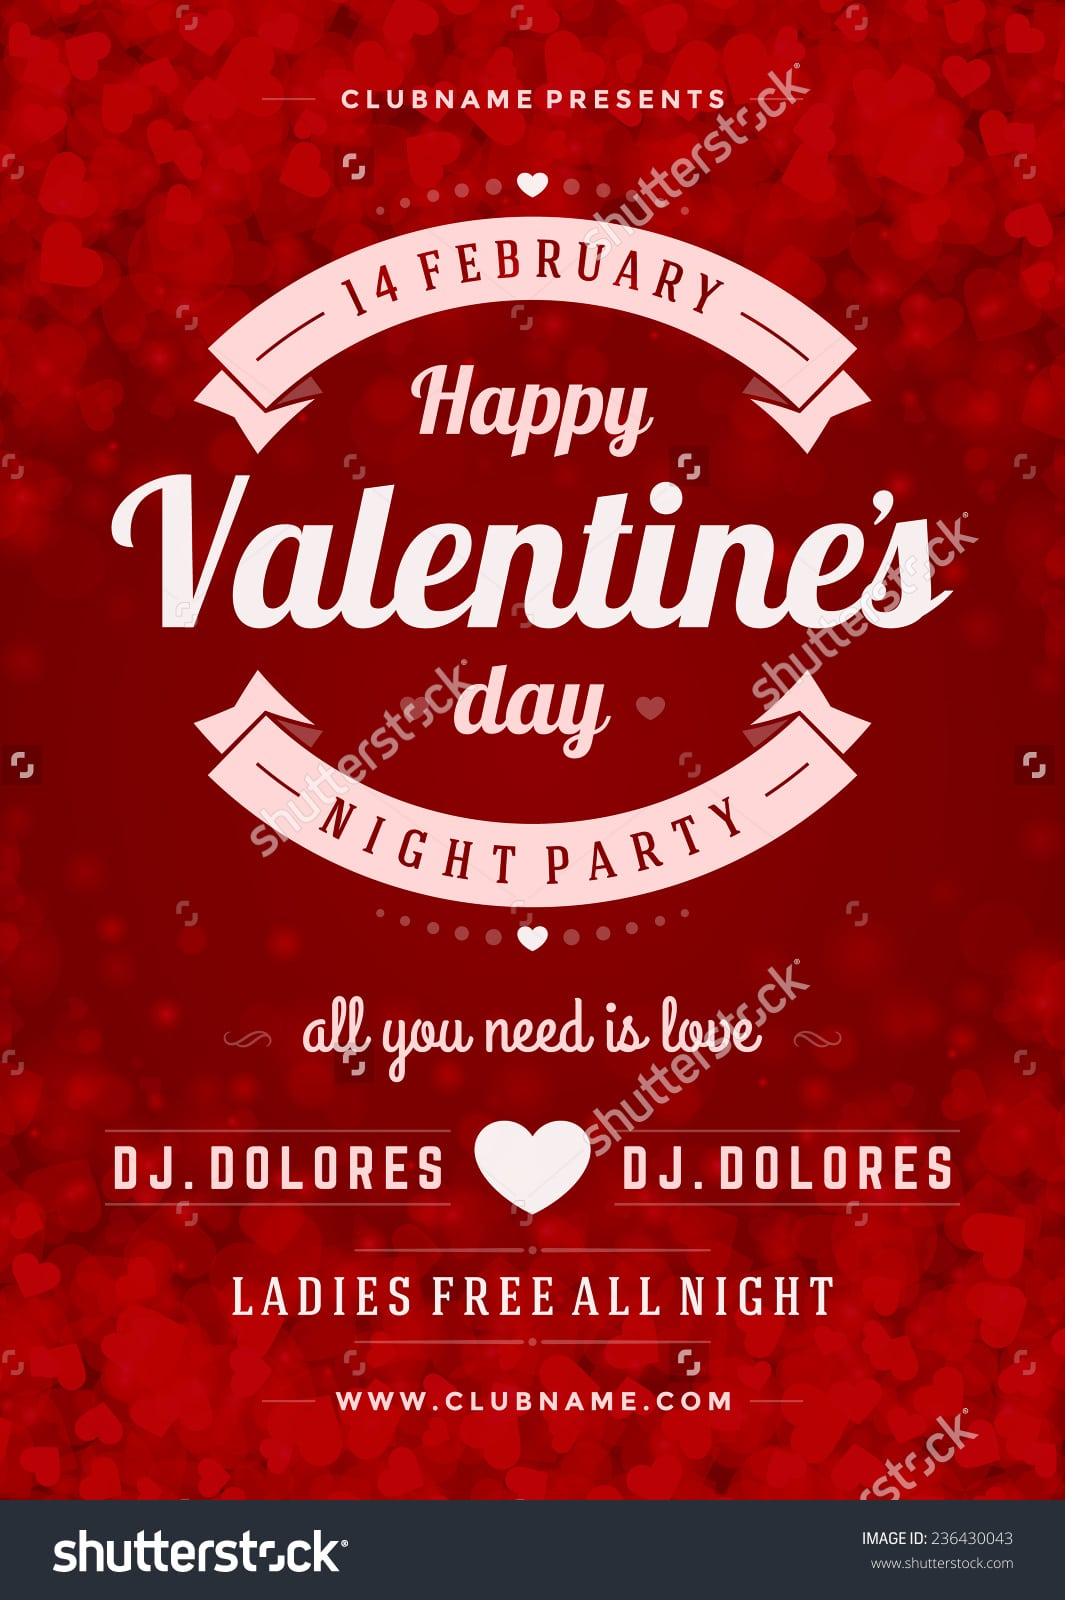 Happy Valentines Day Party Poster Design Stock Vector 236430043